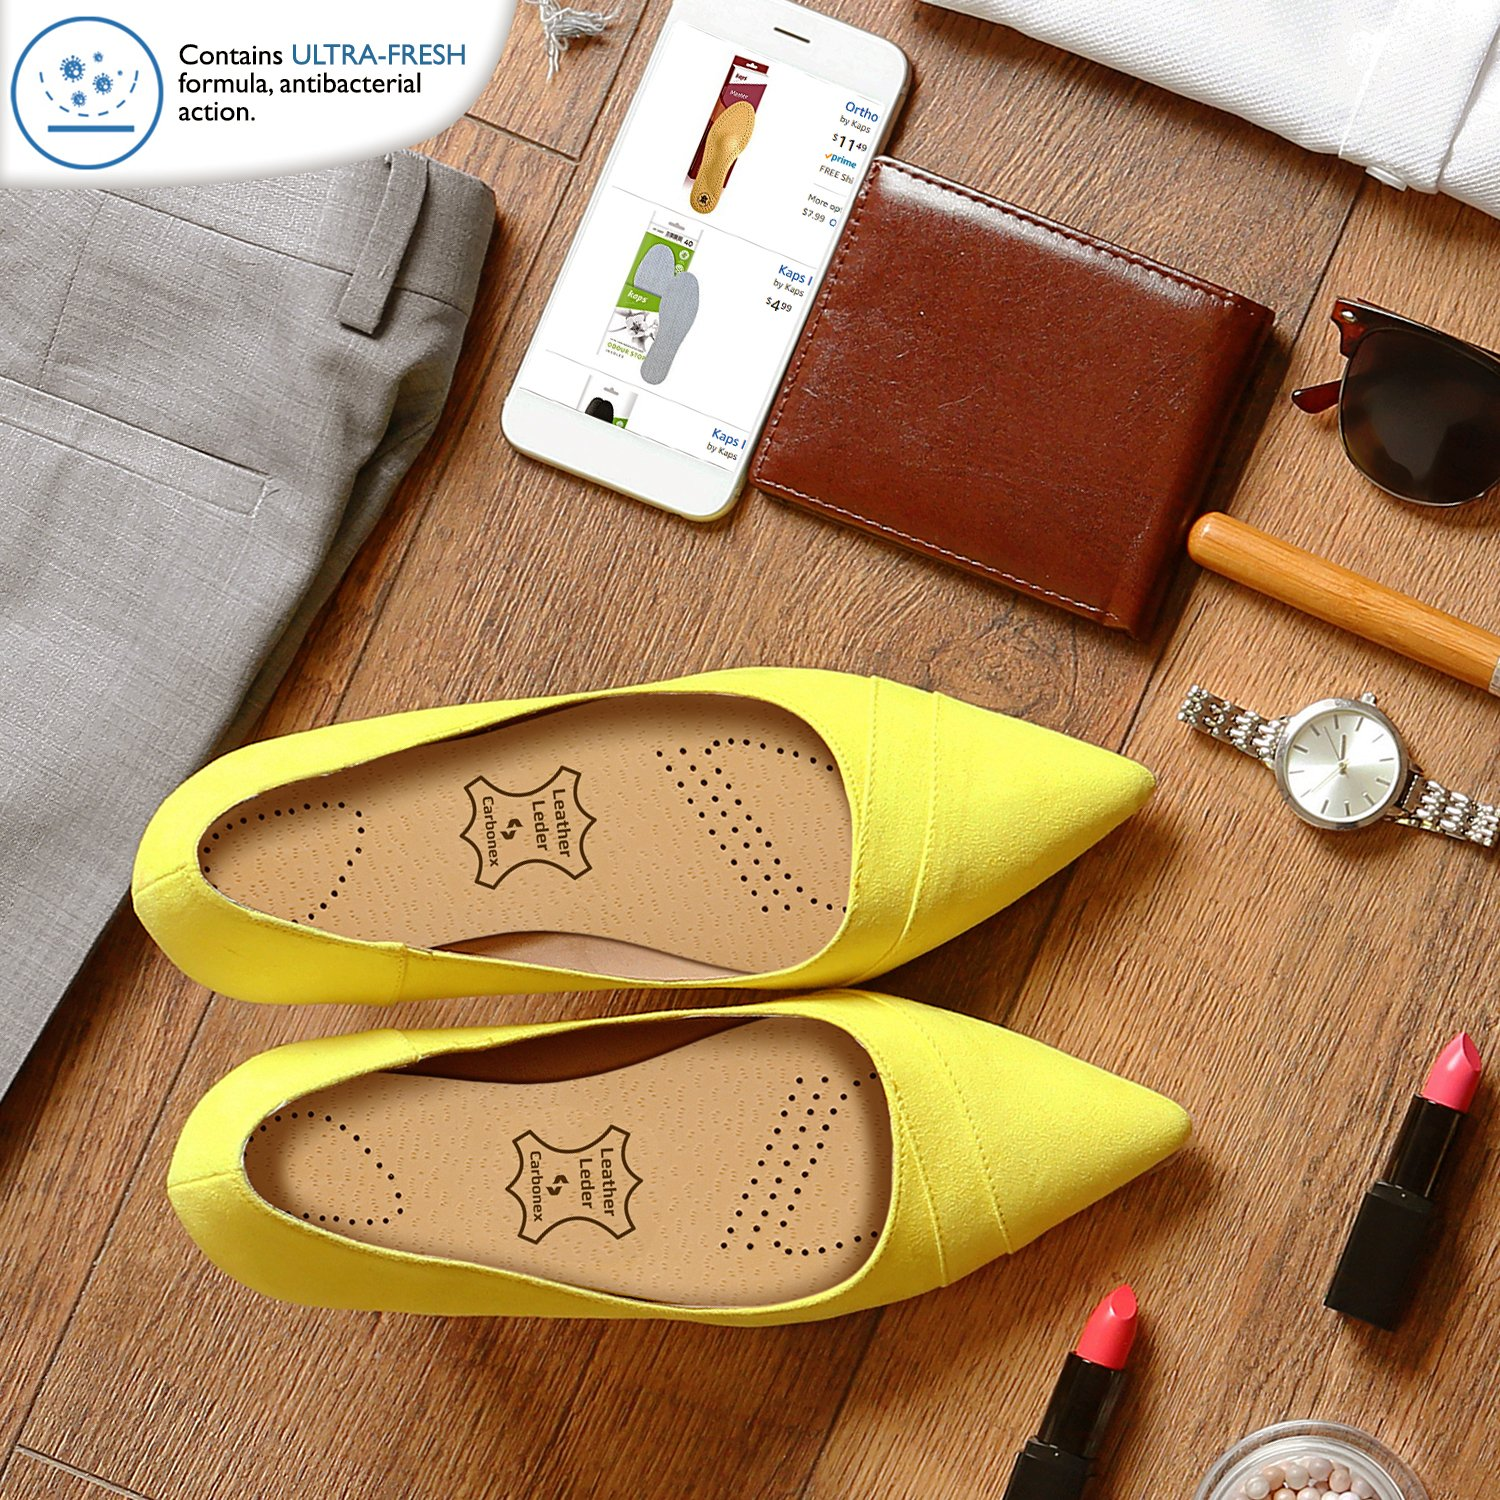 Luxury Leather Shoe Insoles Inserts with Anti-Bacterial Pecari Carbonex /& Ultra-Fresh Odor Control Kaps Insoles for Men /& Women